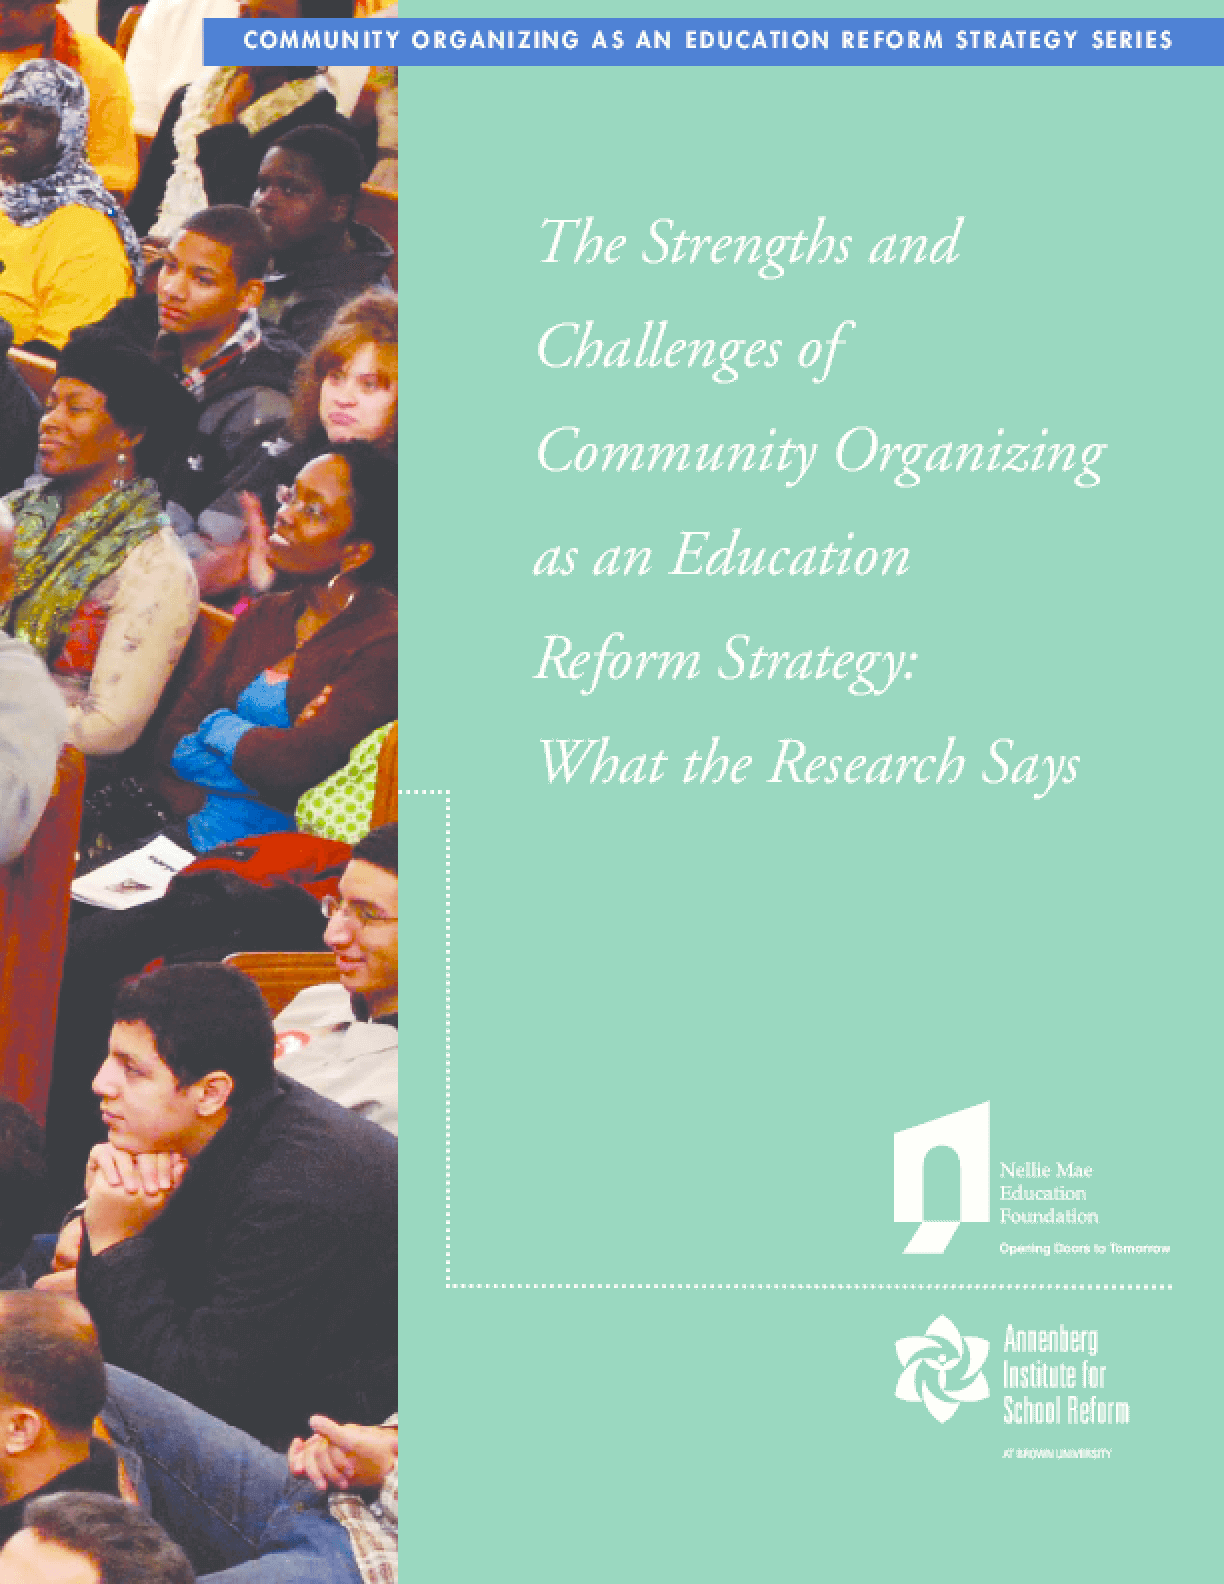 The Strengths and Challenges of Community Organizing as an Education Reform Strategy: What the Research Says